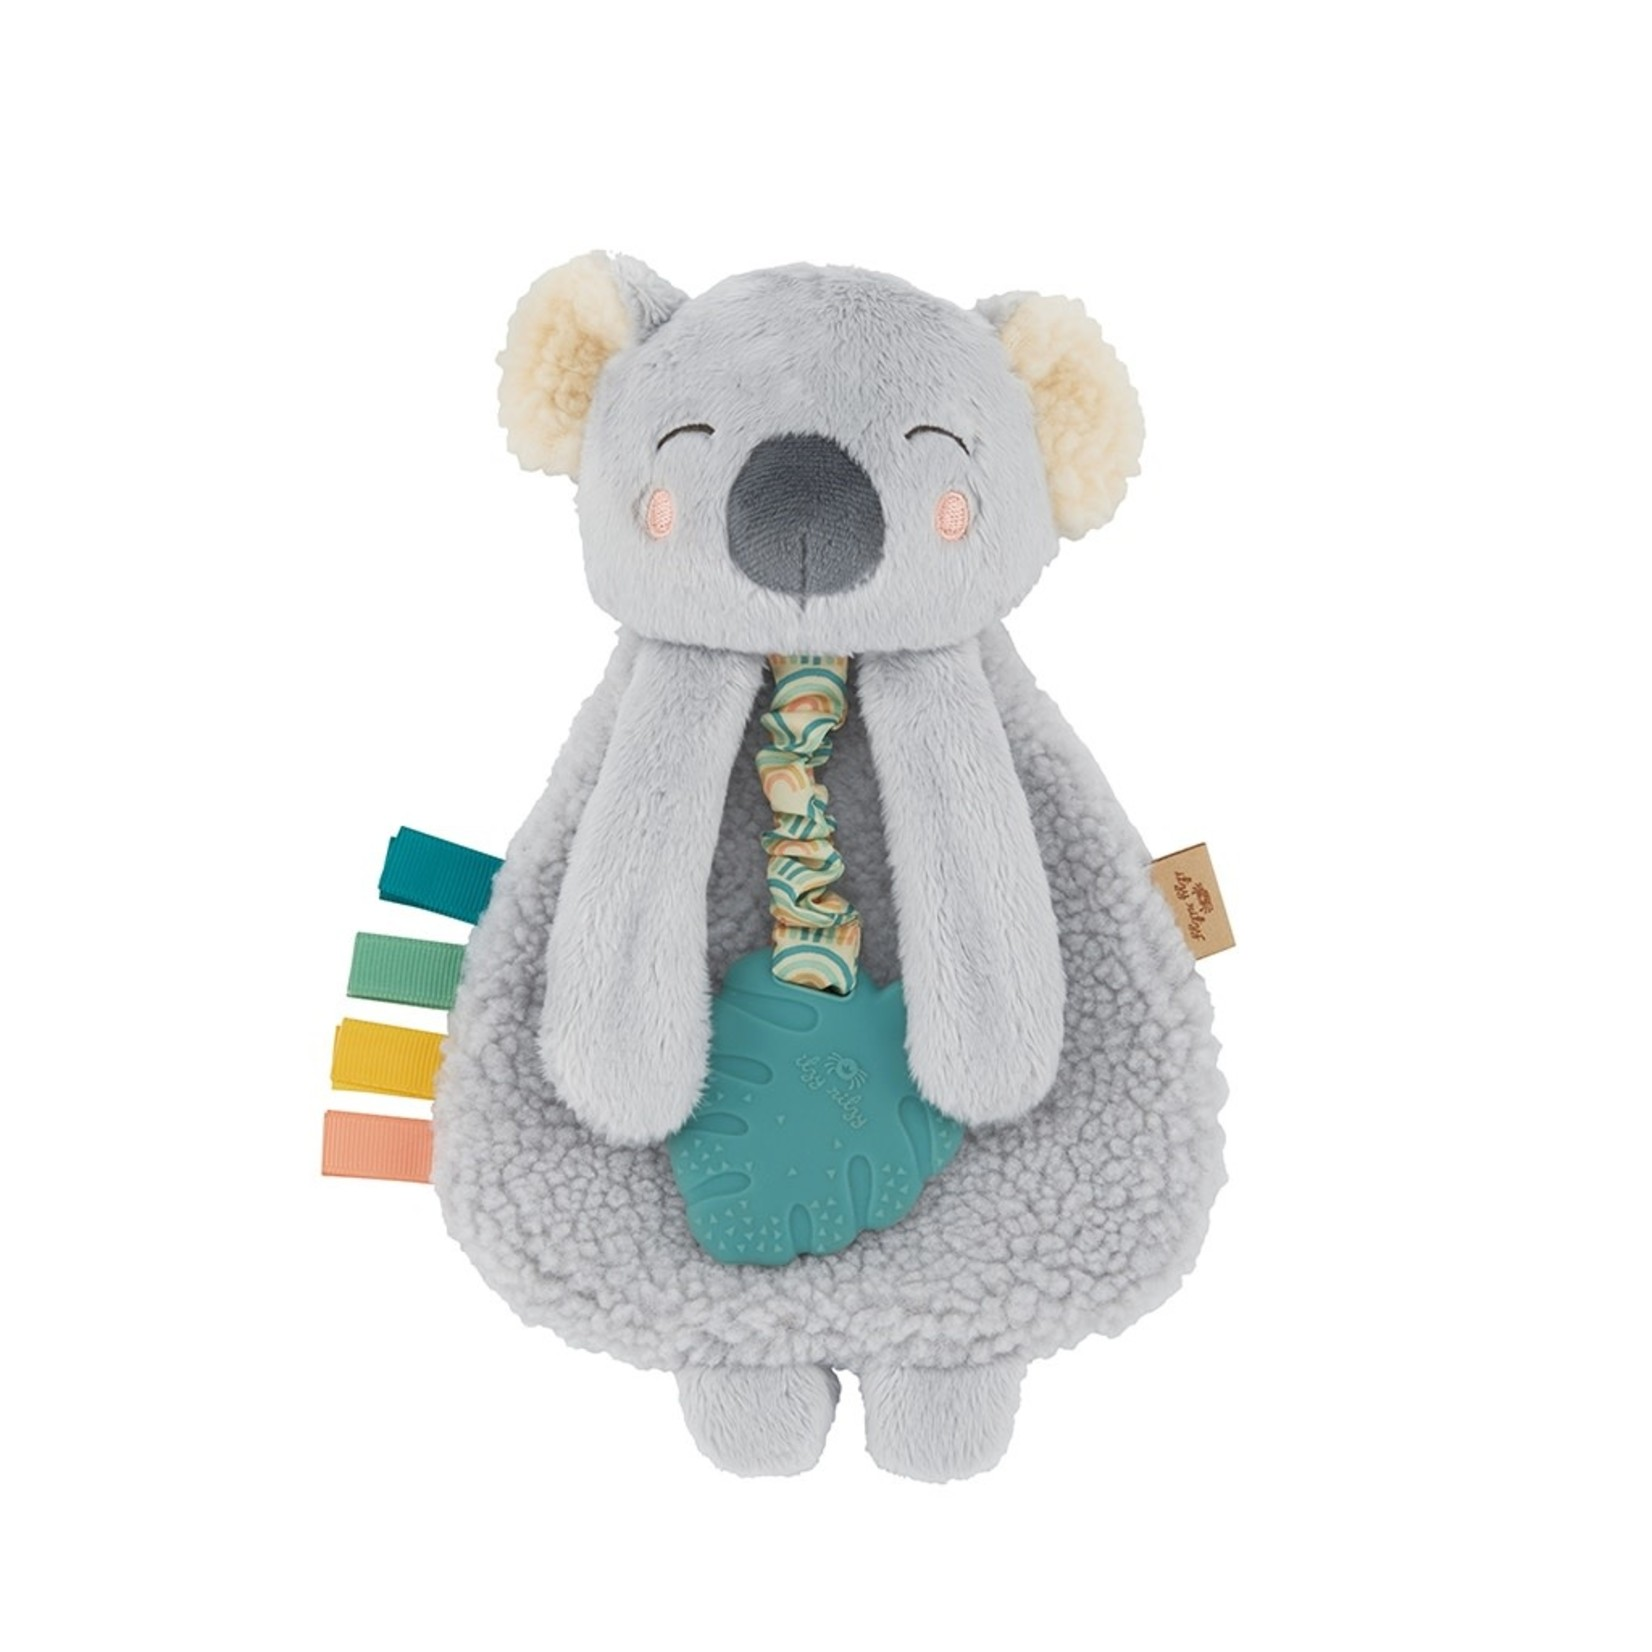 Itzy Ritzy Itzy Lovey Koala Plush with Silicone Teether Toy